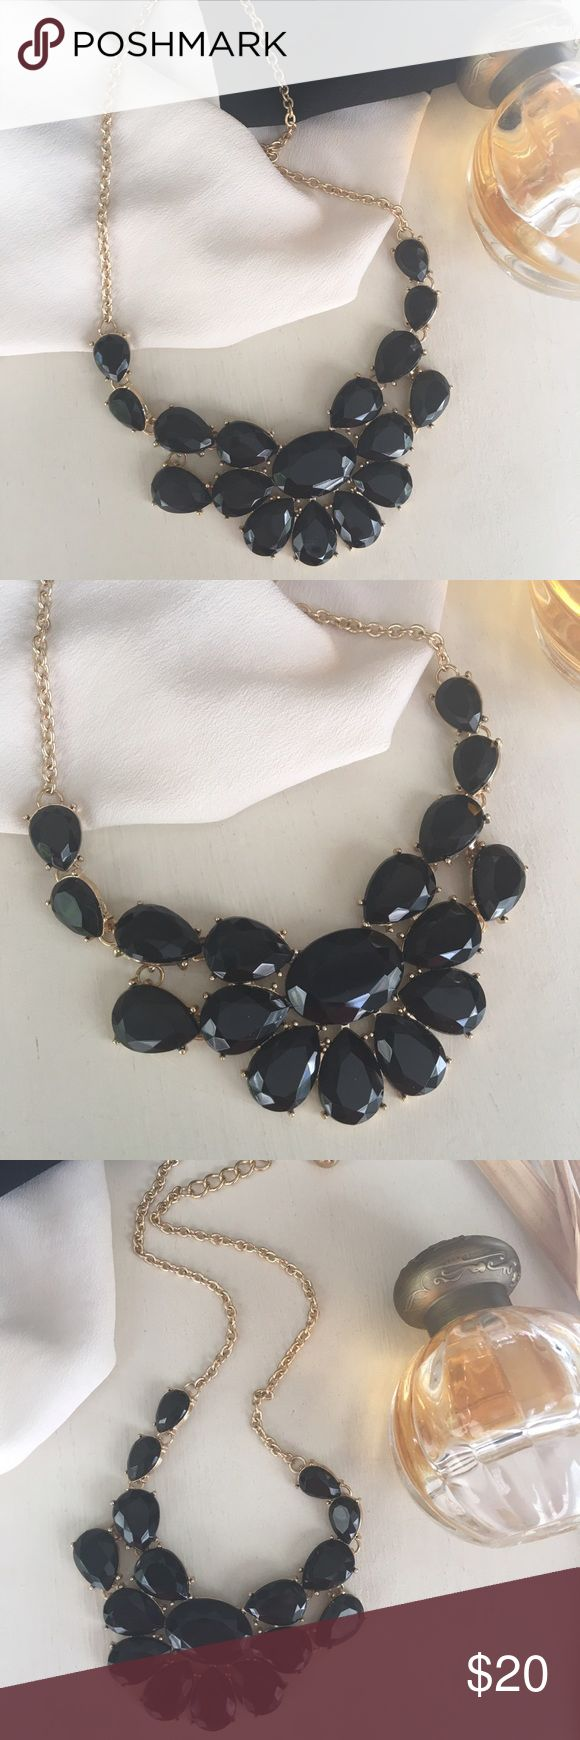 💥Today Only!🆕{The Black Swan} Gem +Gold Necklace ✨🆕{The Black Swan} ✨Black Gem 💎 + Gold Chain Necklace✨Stunning yet understated statement necklace✨Perfect for a holiday party✨Pretty + classy enough for work✨ 🚫No offers on 1-day Sale price💥🚫 Jewelry Necklaces